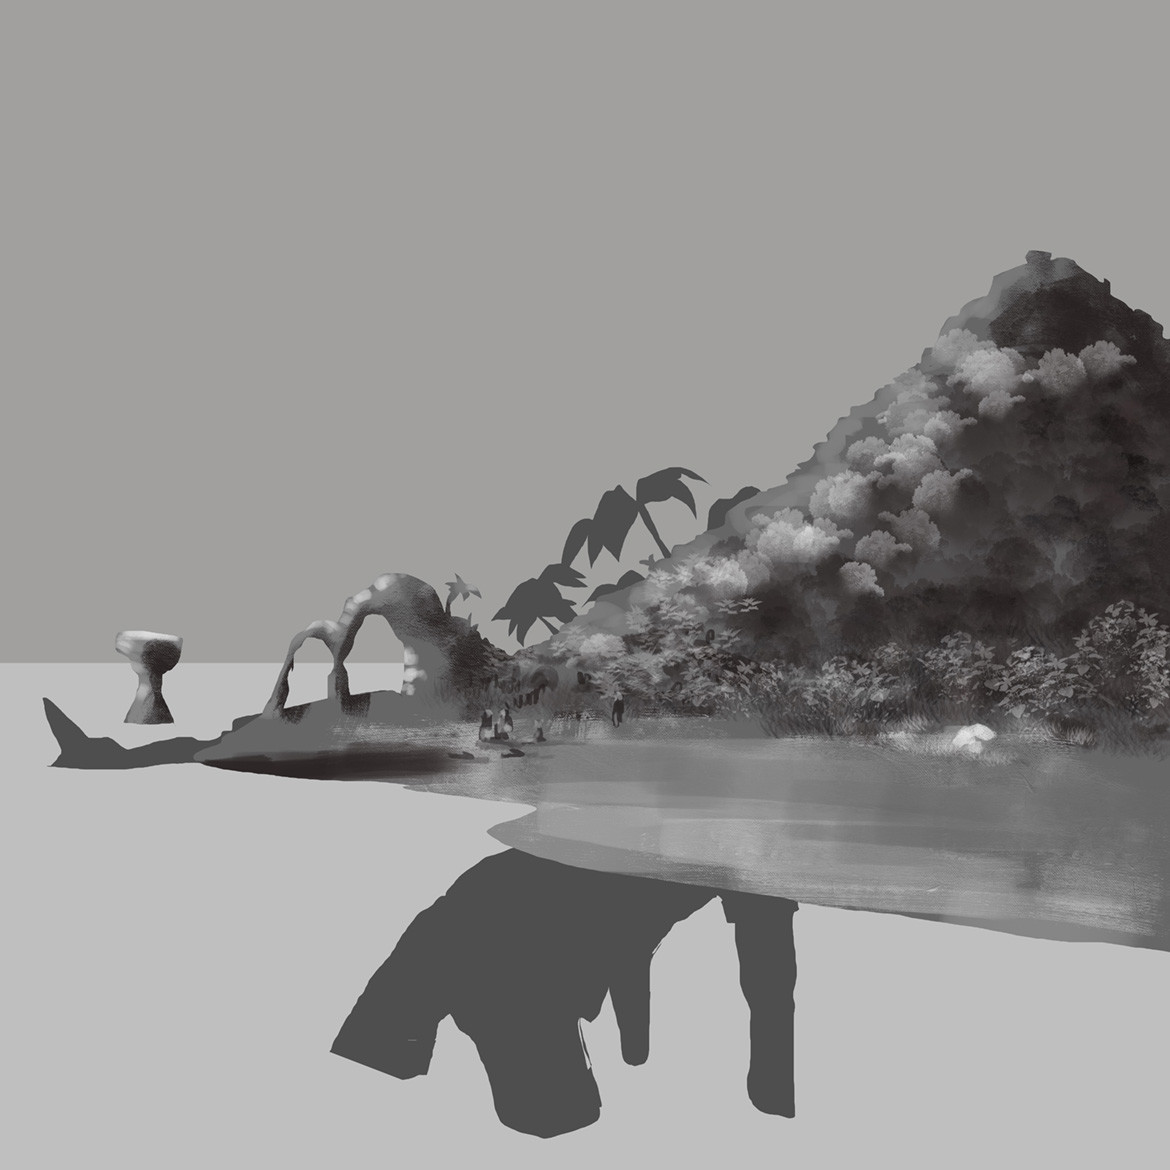 I tried the greyscale first approach.